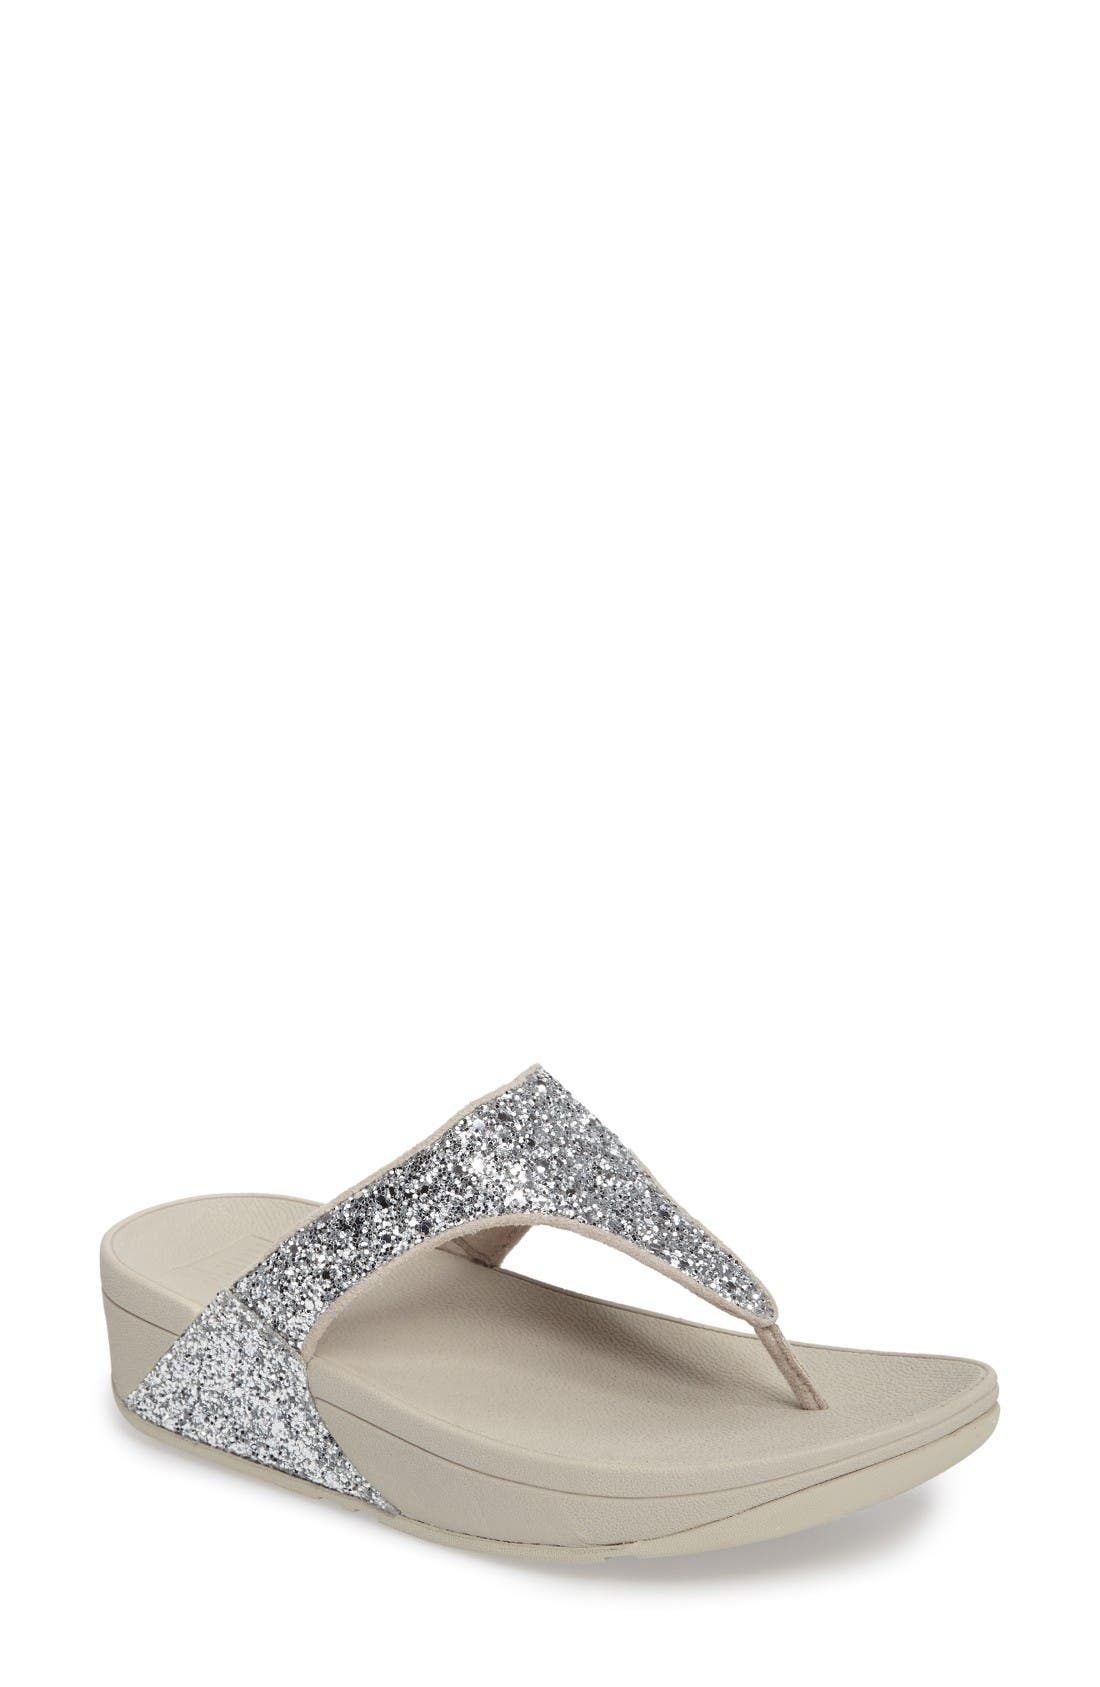 FITFLOP Glitterball™ Thong Sandal